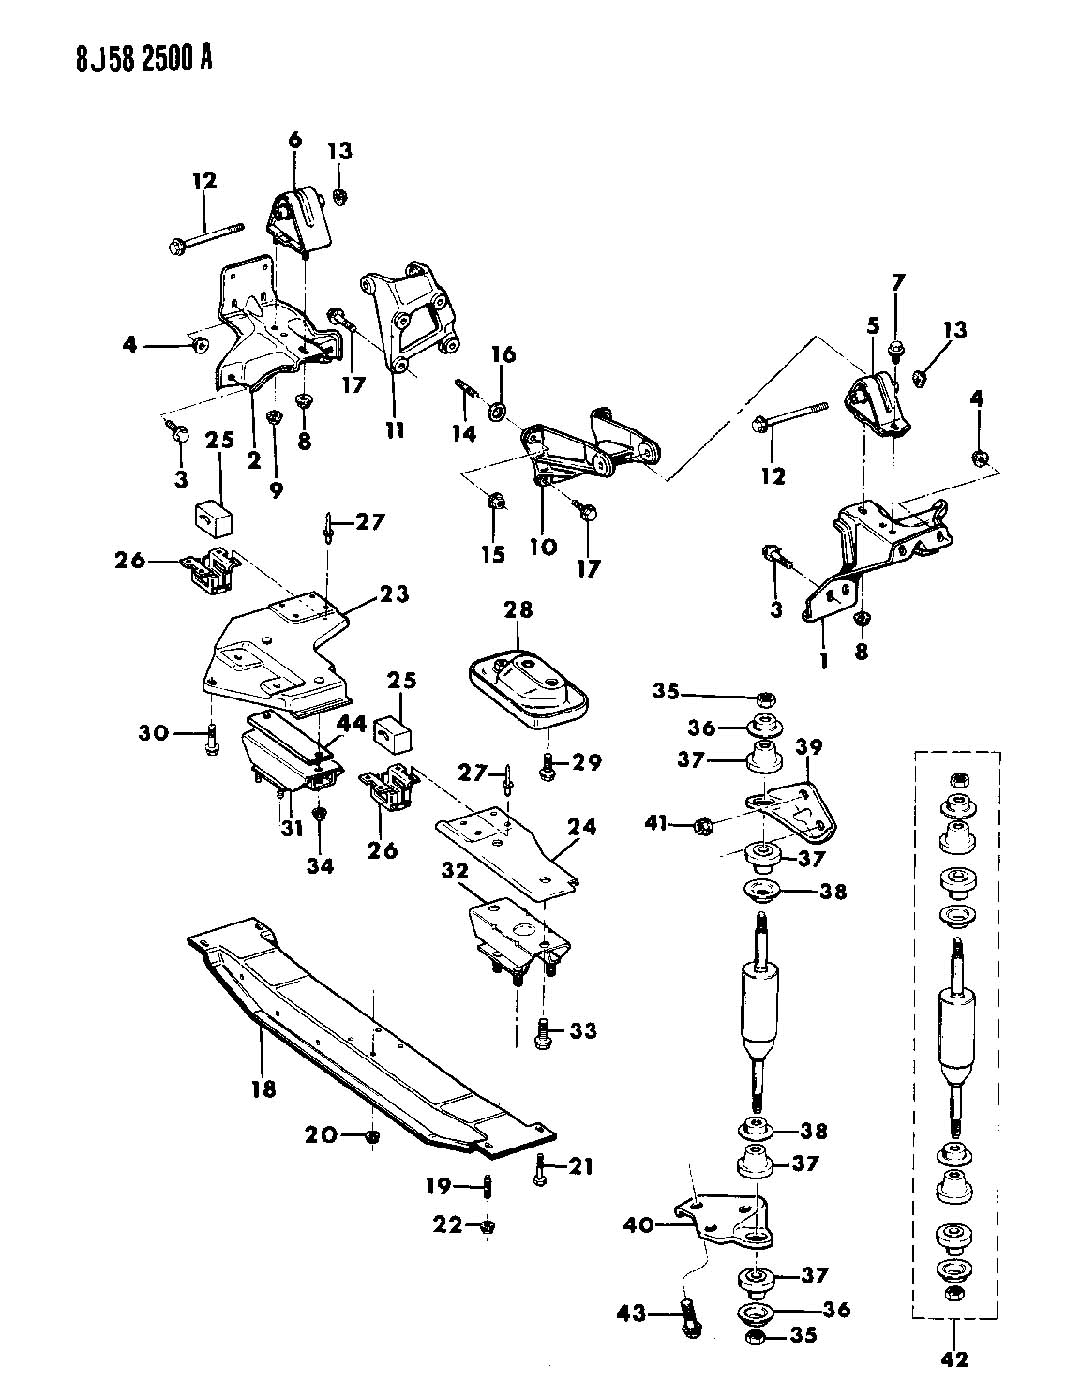 Dodge Ram Bolt Used For Screw And Washer Hex